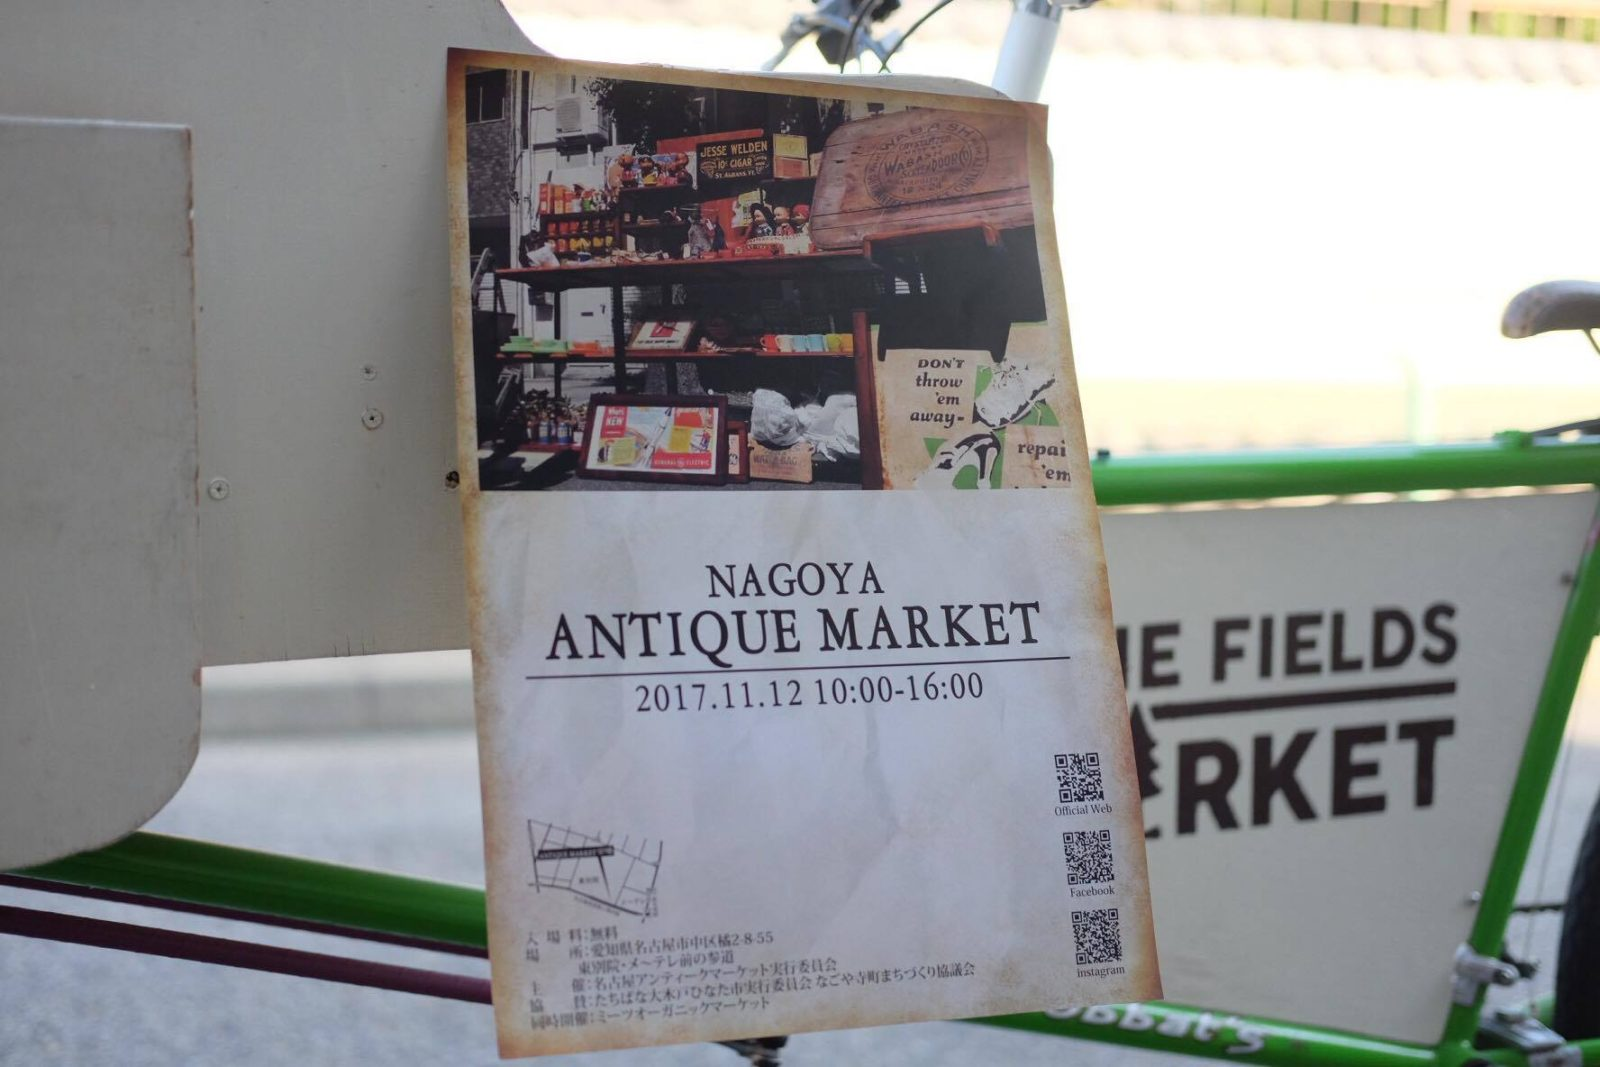 Nagoya Antique Market